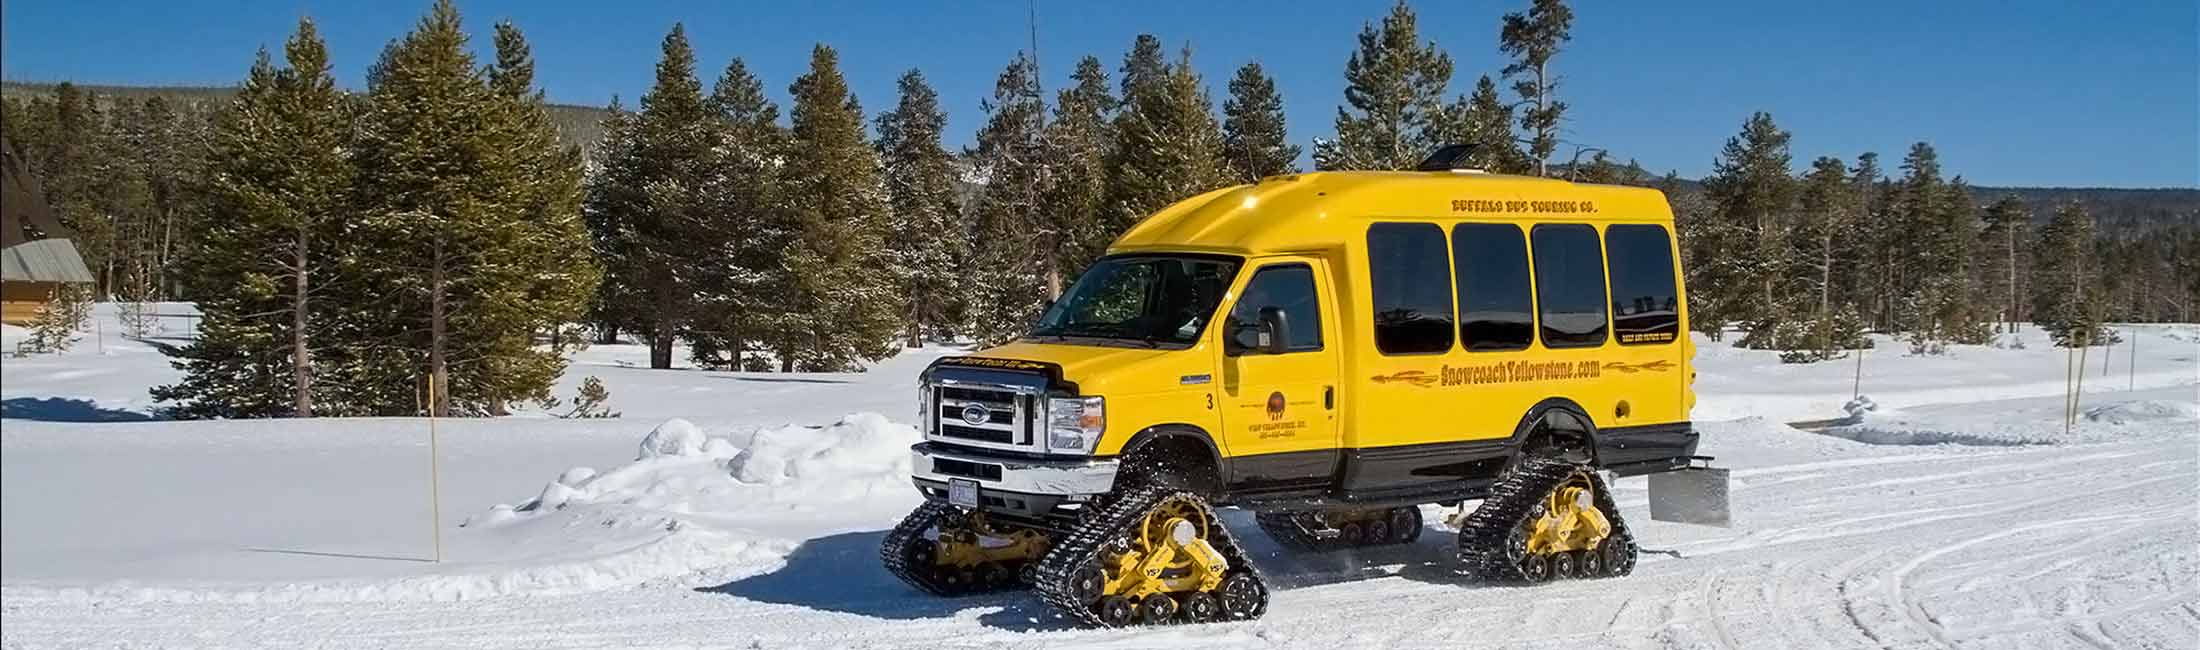 Snowcoach Tours